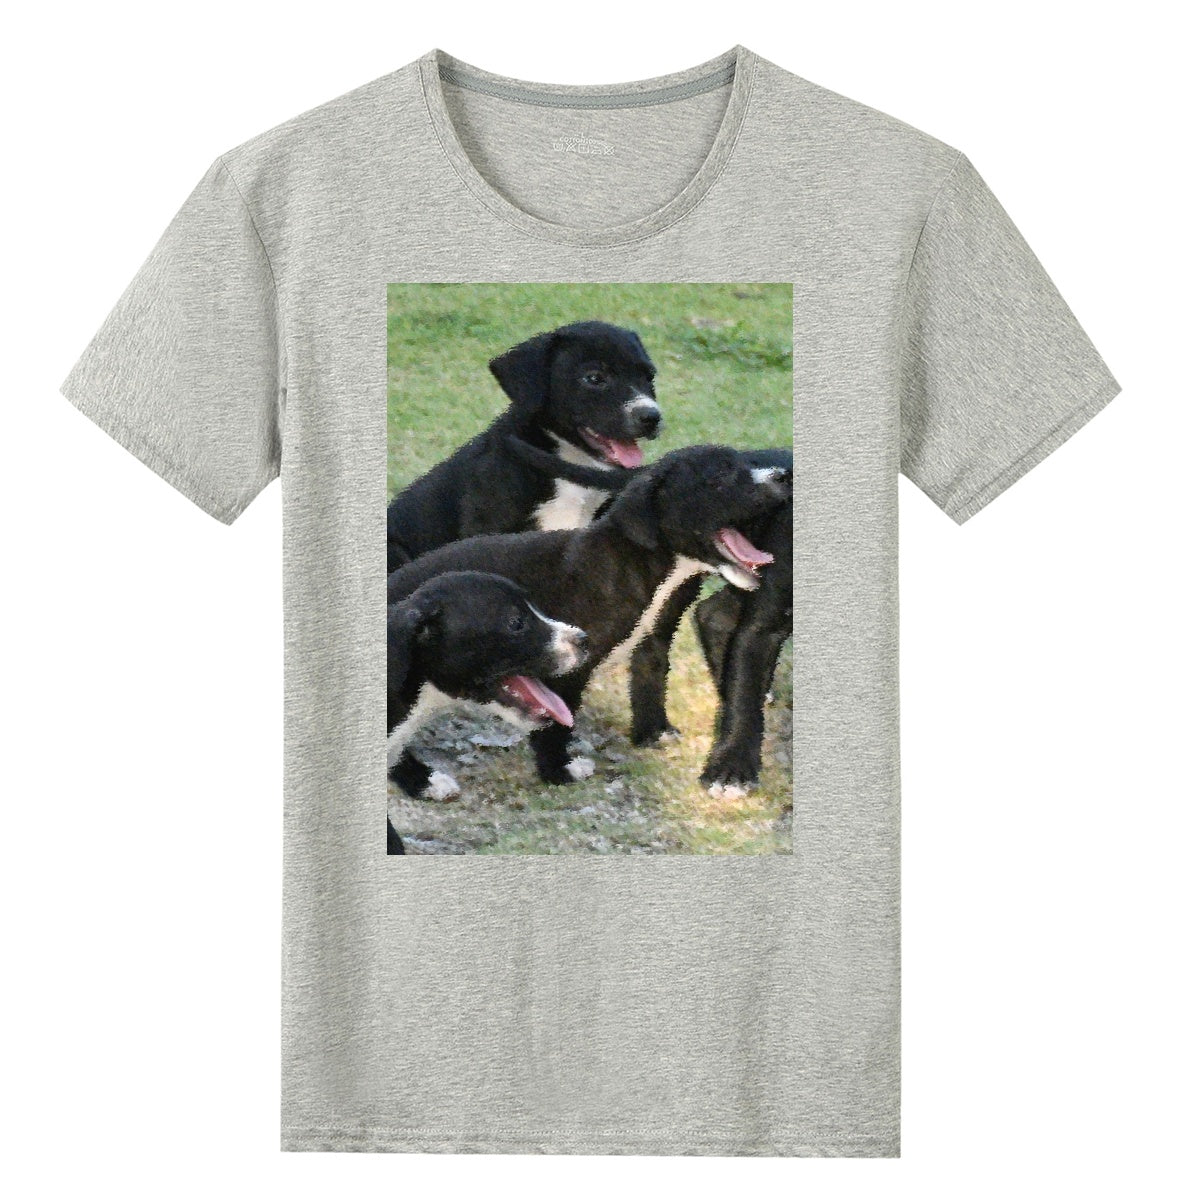 UNISEX Gildan 76000 Cotton T-shirts - Playful puppies 🐕‍🦺🐕‍🦺 in Humacao Puerto Rico